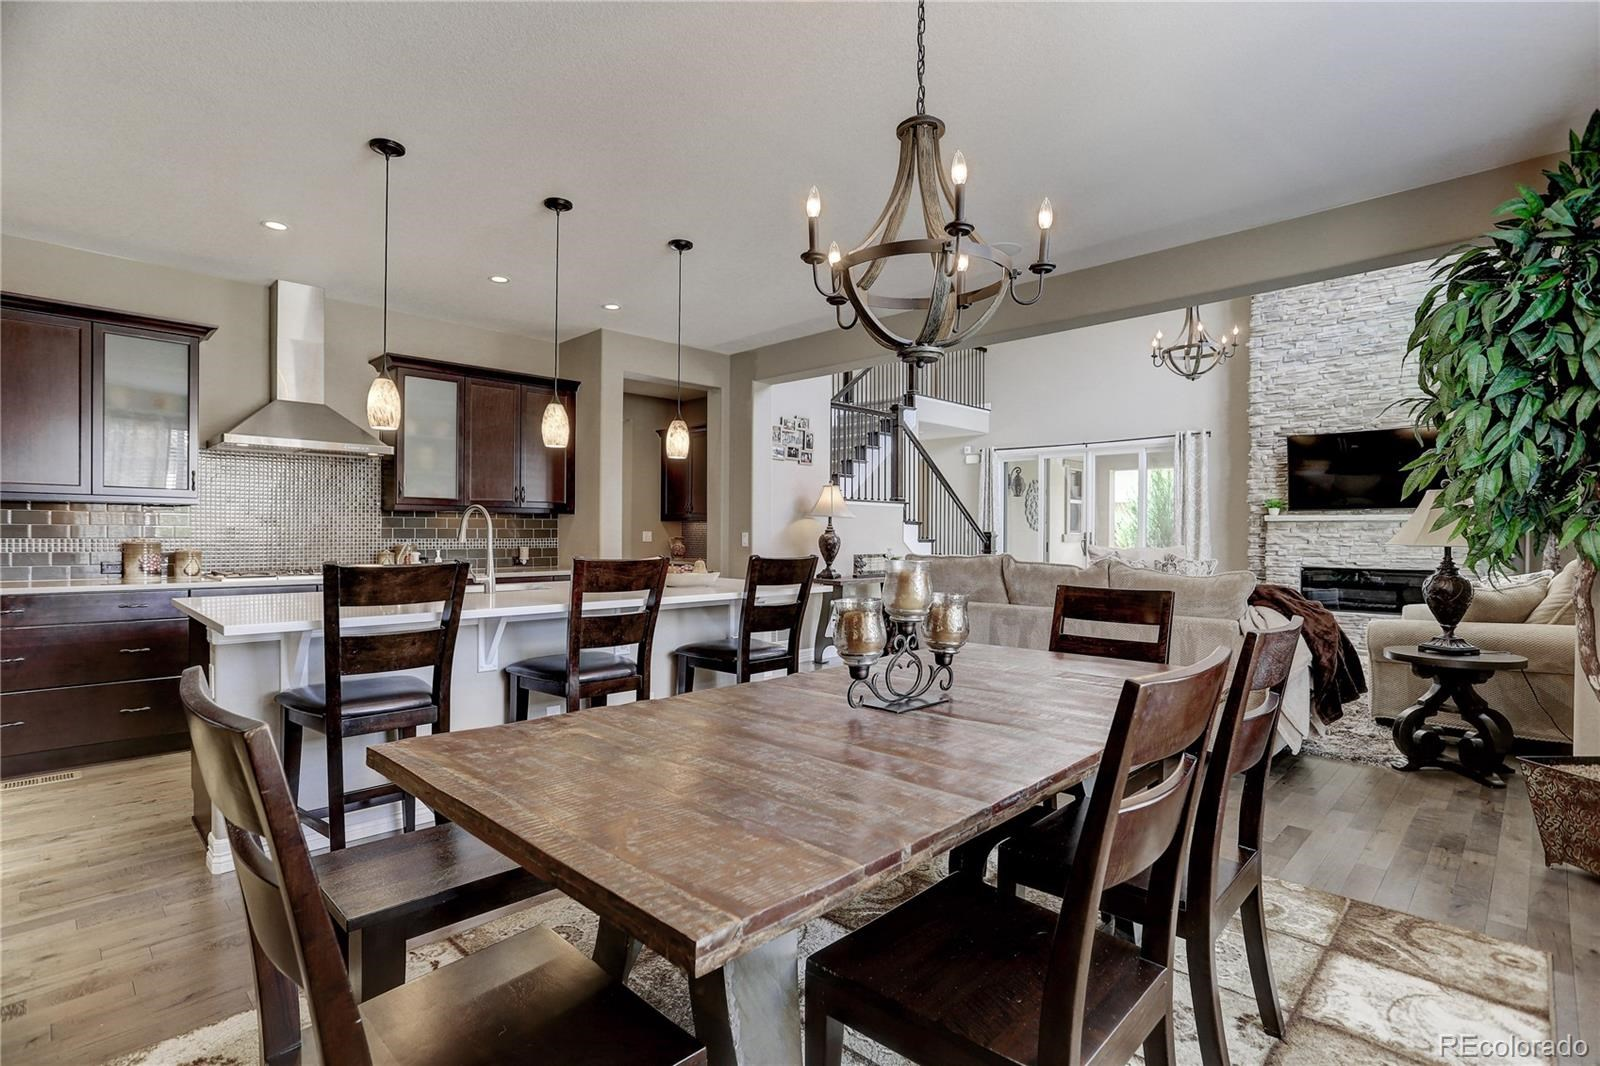 MLS# 8360577 - 11 - 2247 S Isabell Court, Lakewood, CO 80228